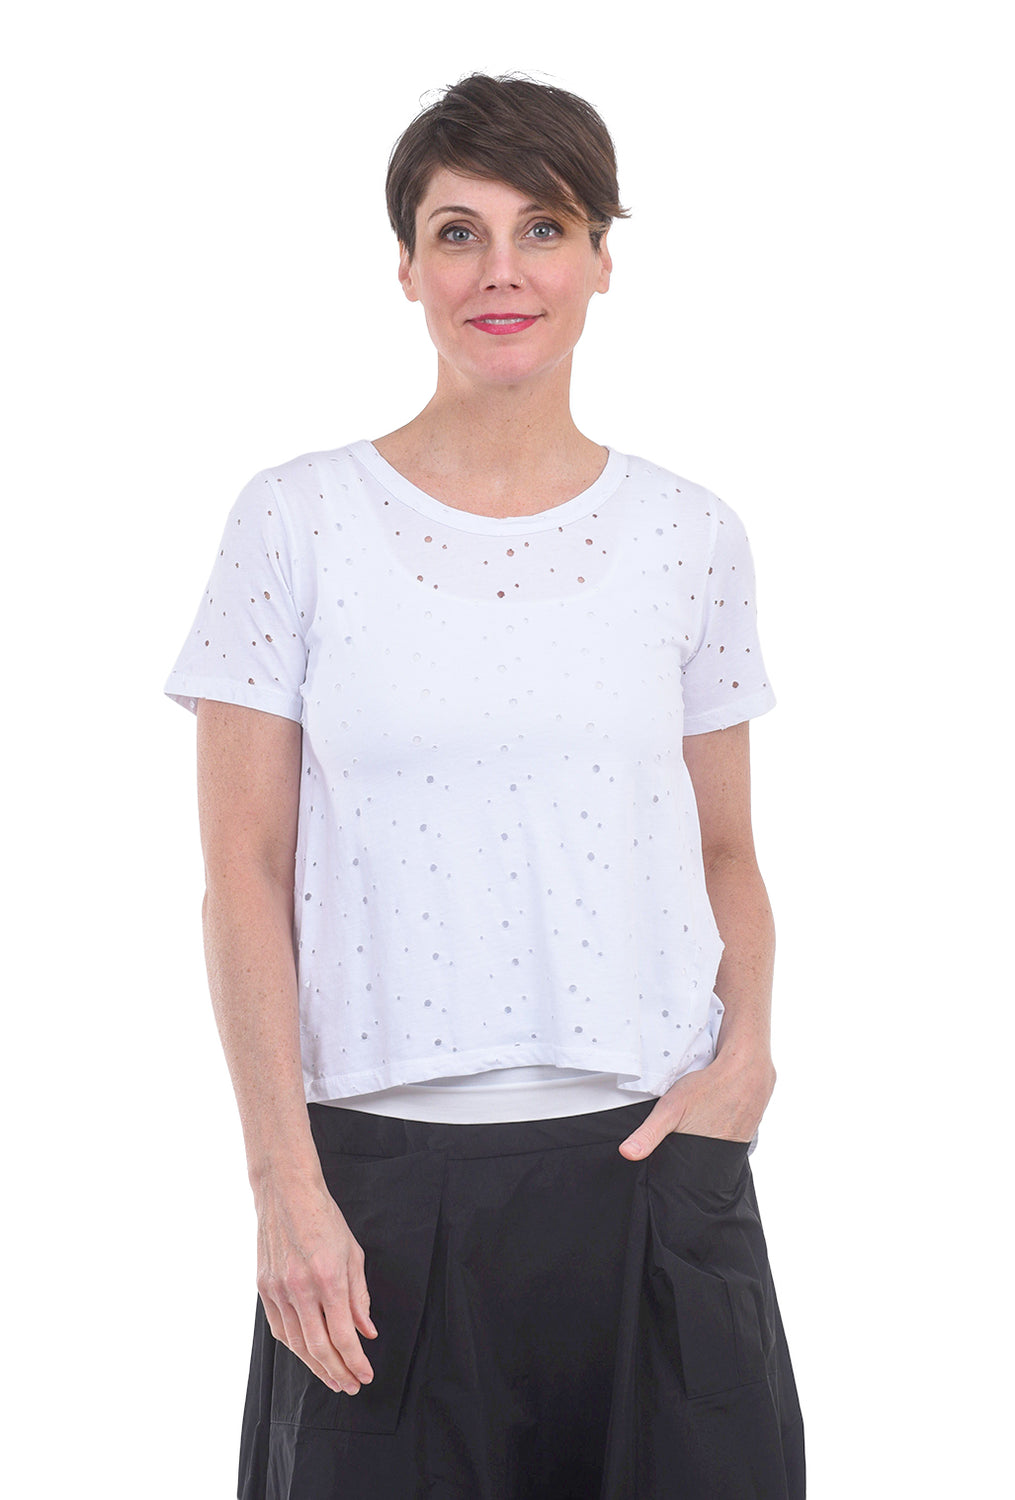 Baci Amici Destructed Tee, White